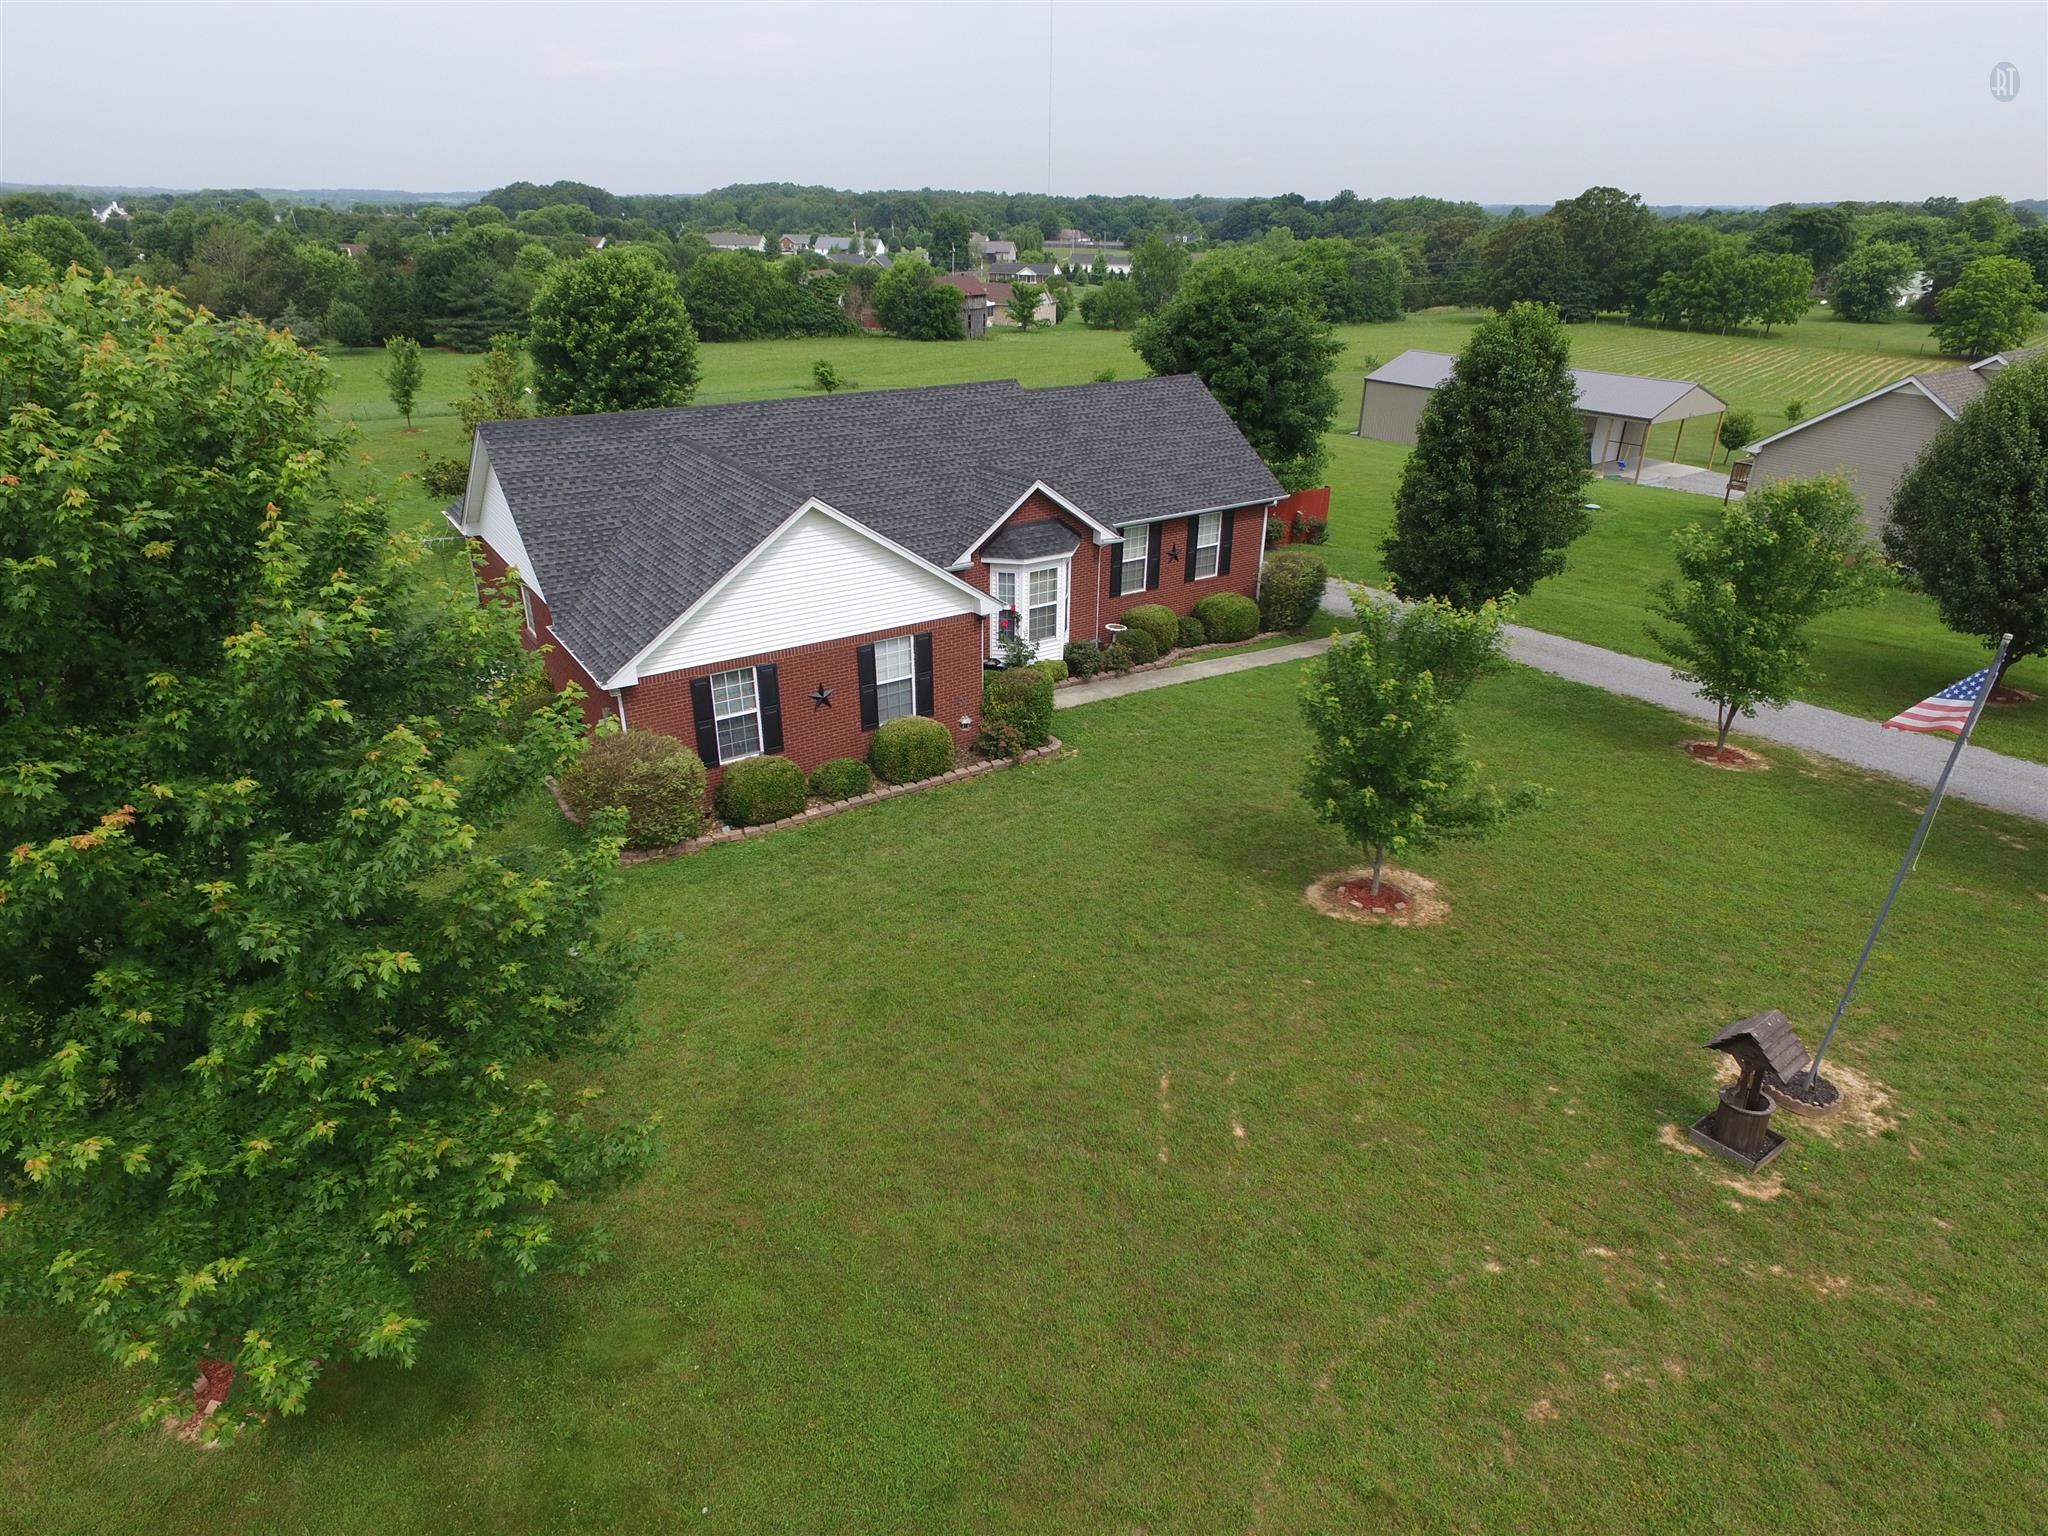 3742 Calista Rd, Cross Plains, TN 37049